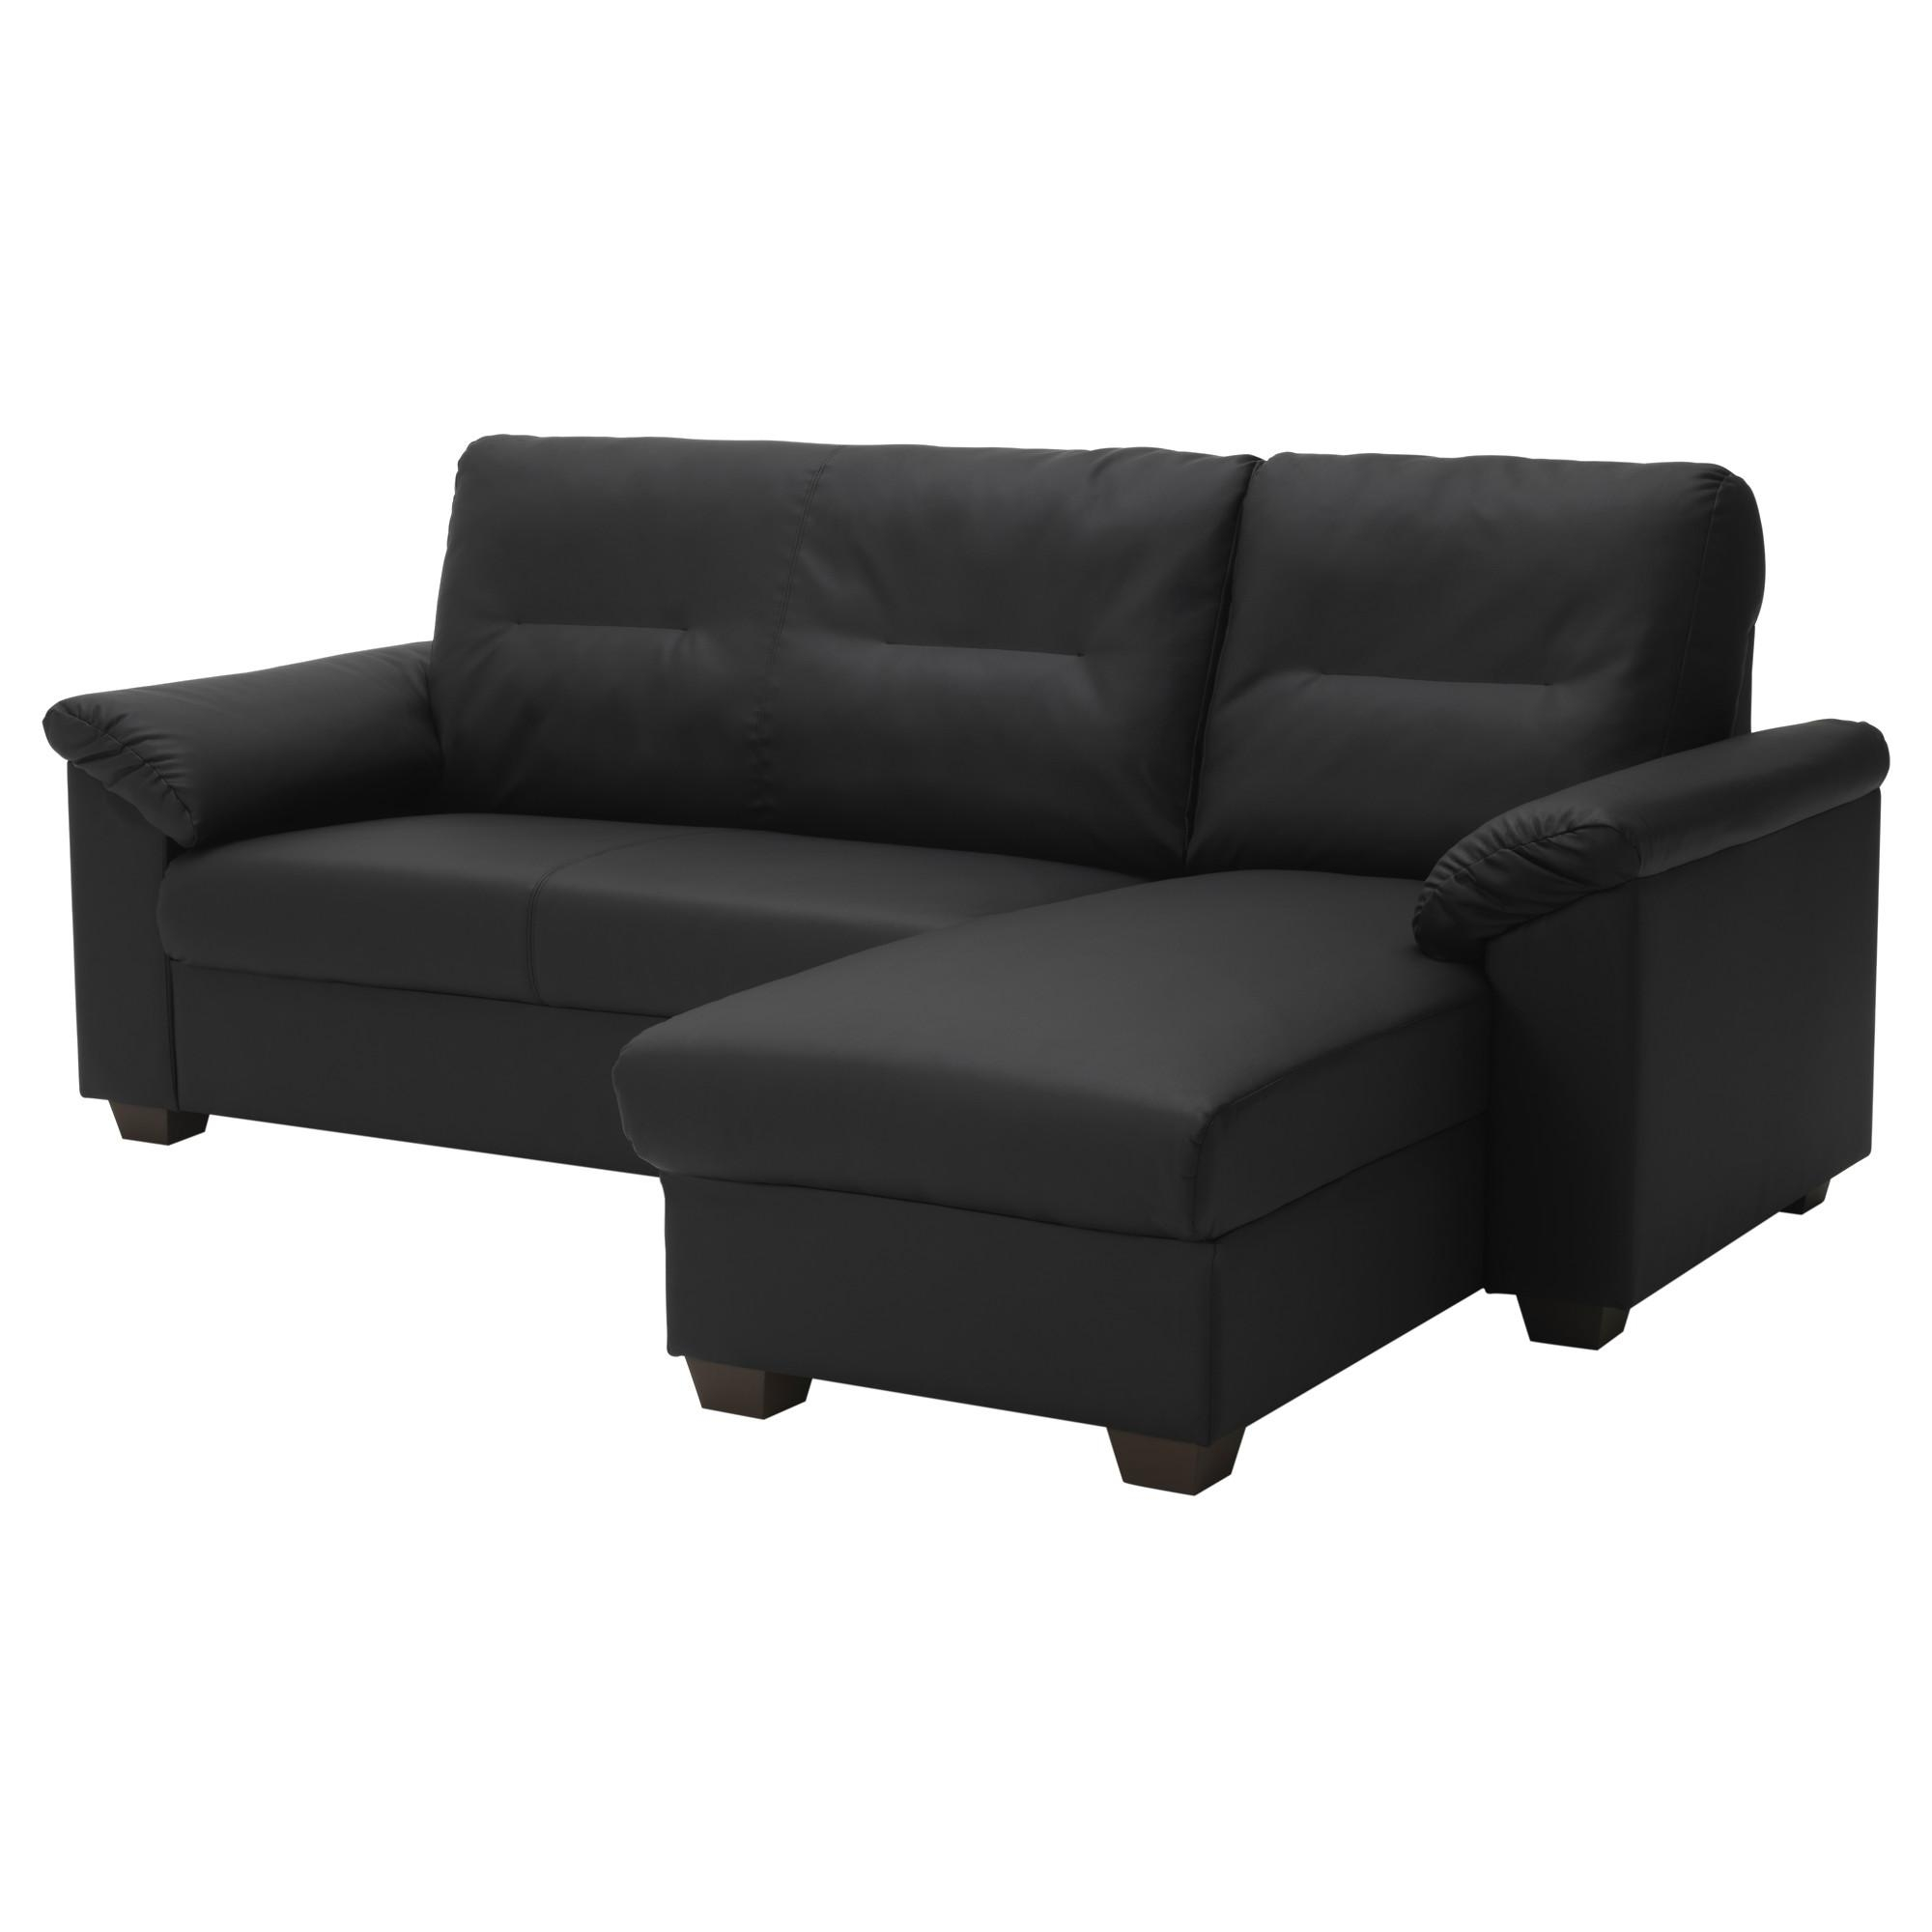 Furniture: Sectional Couches Ikea | Ikea Leather Sofa | Sleeper With Regard To Sleeper Sectional Sofa Ikea (Image 11 of 20)